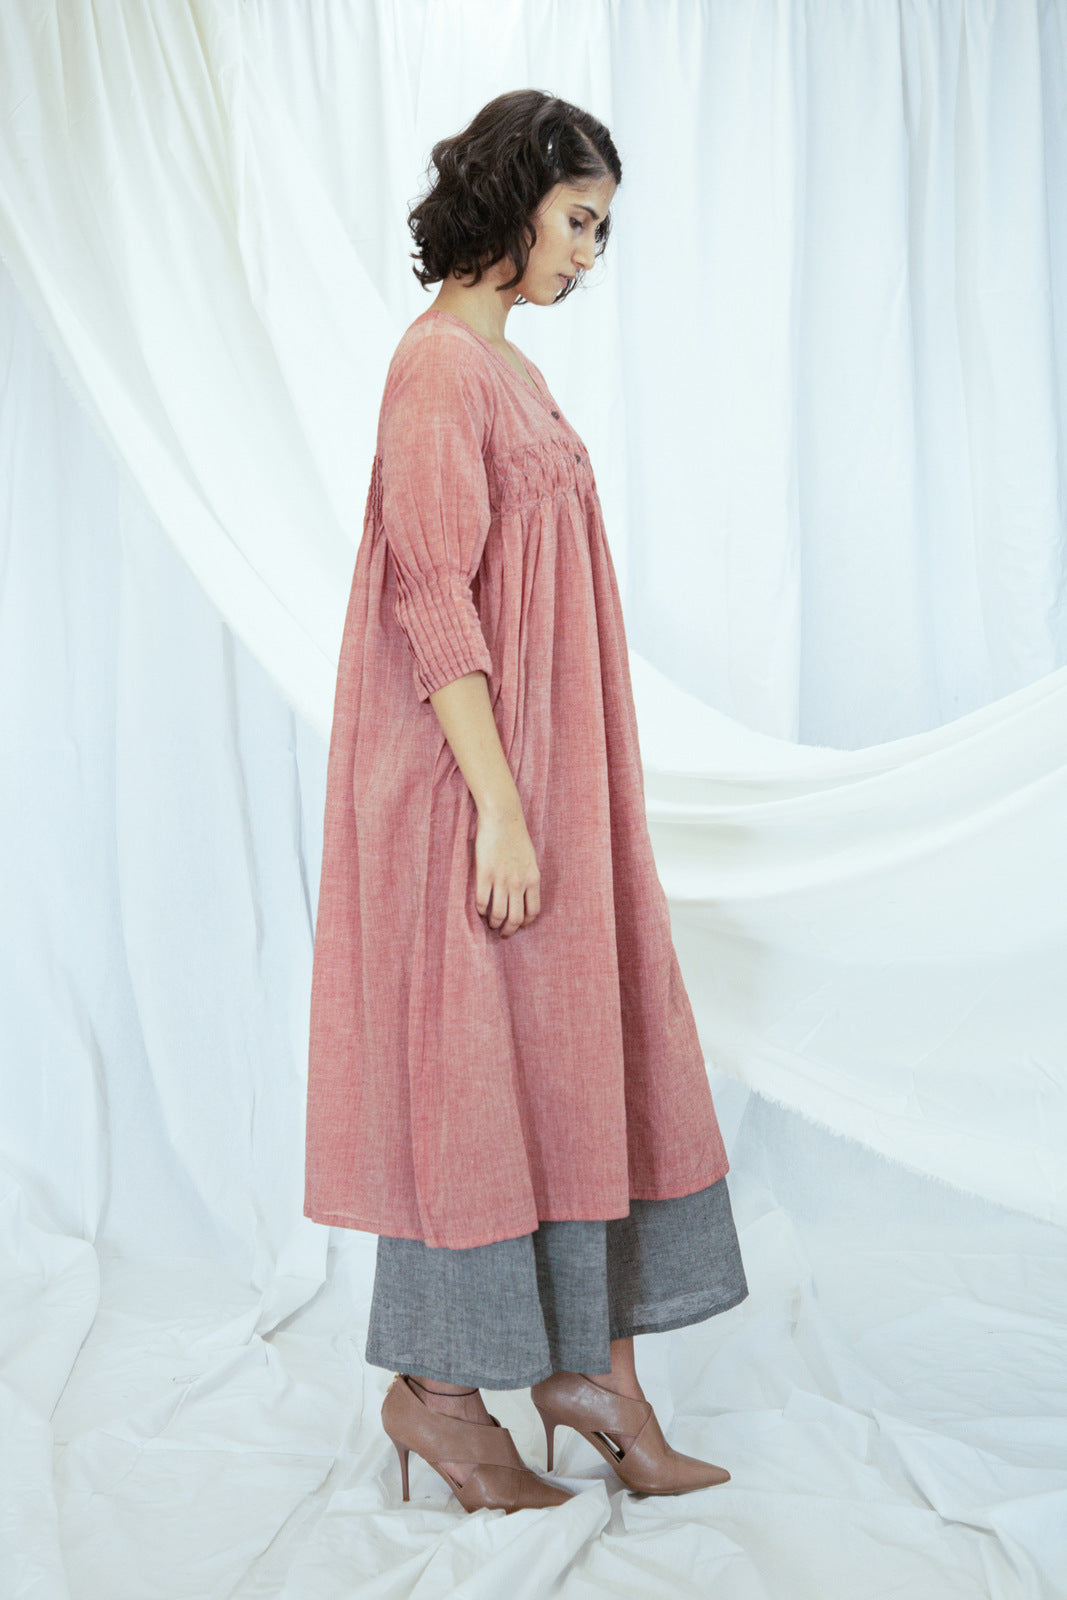 Red Tucks Detail Mulmul Tunic with Grey Palazzos